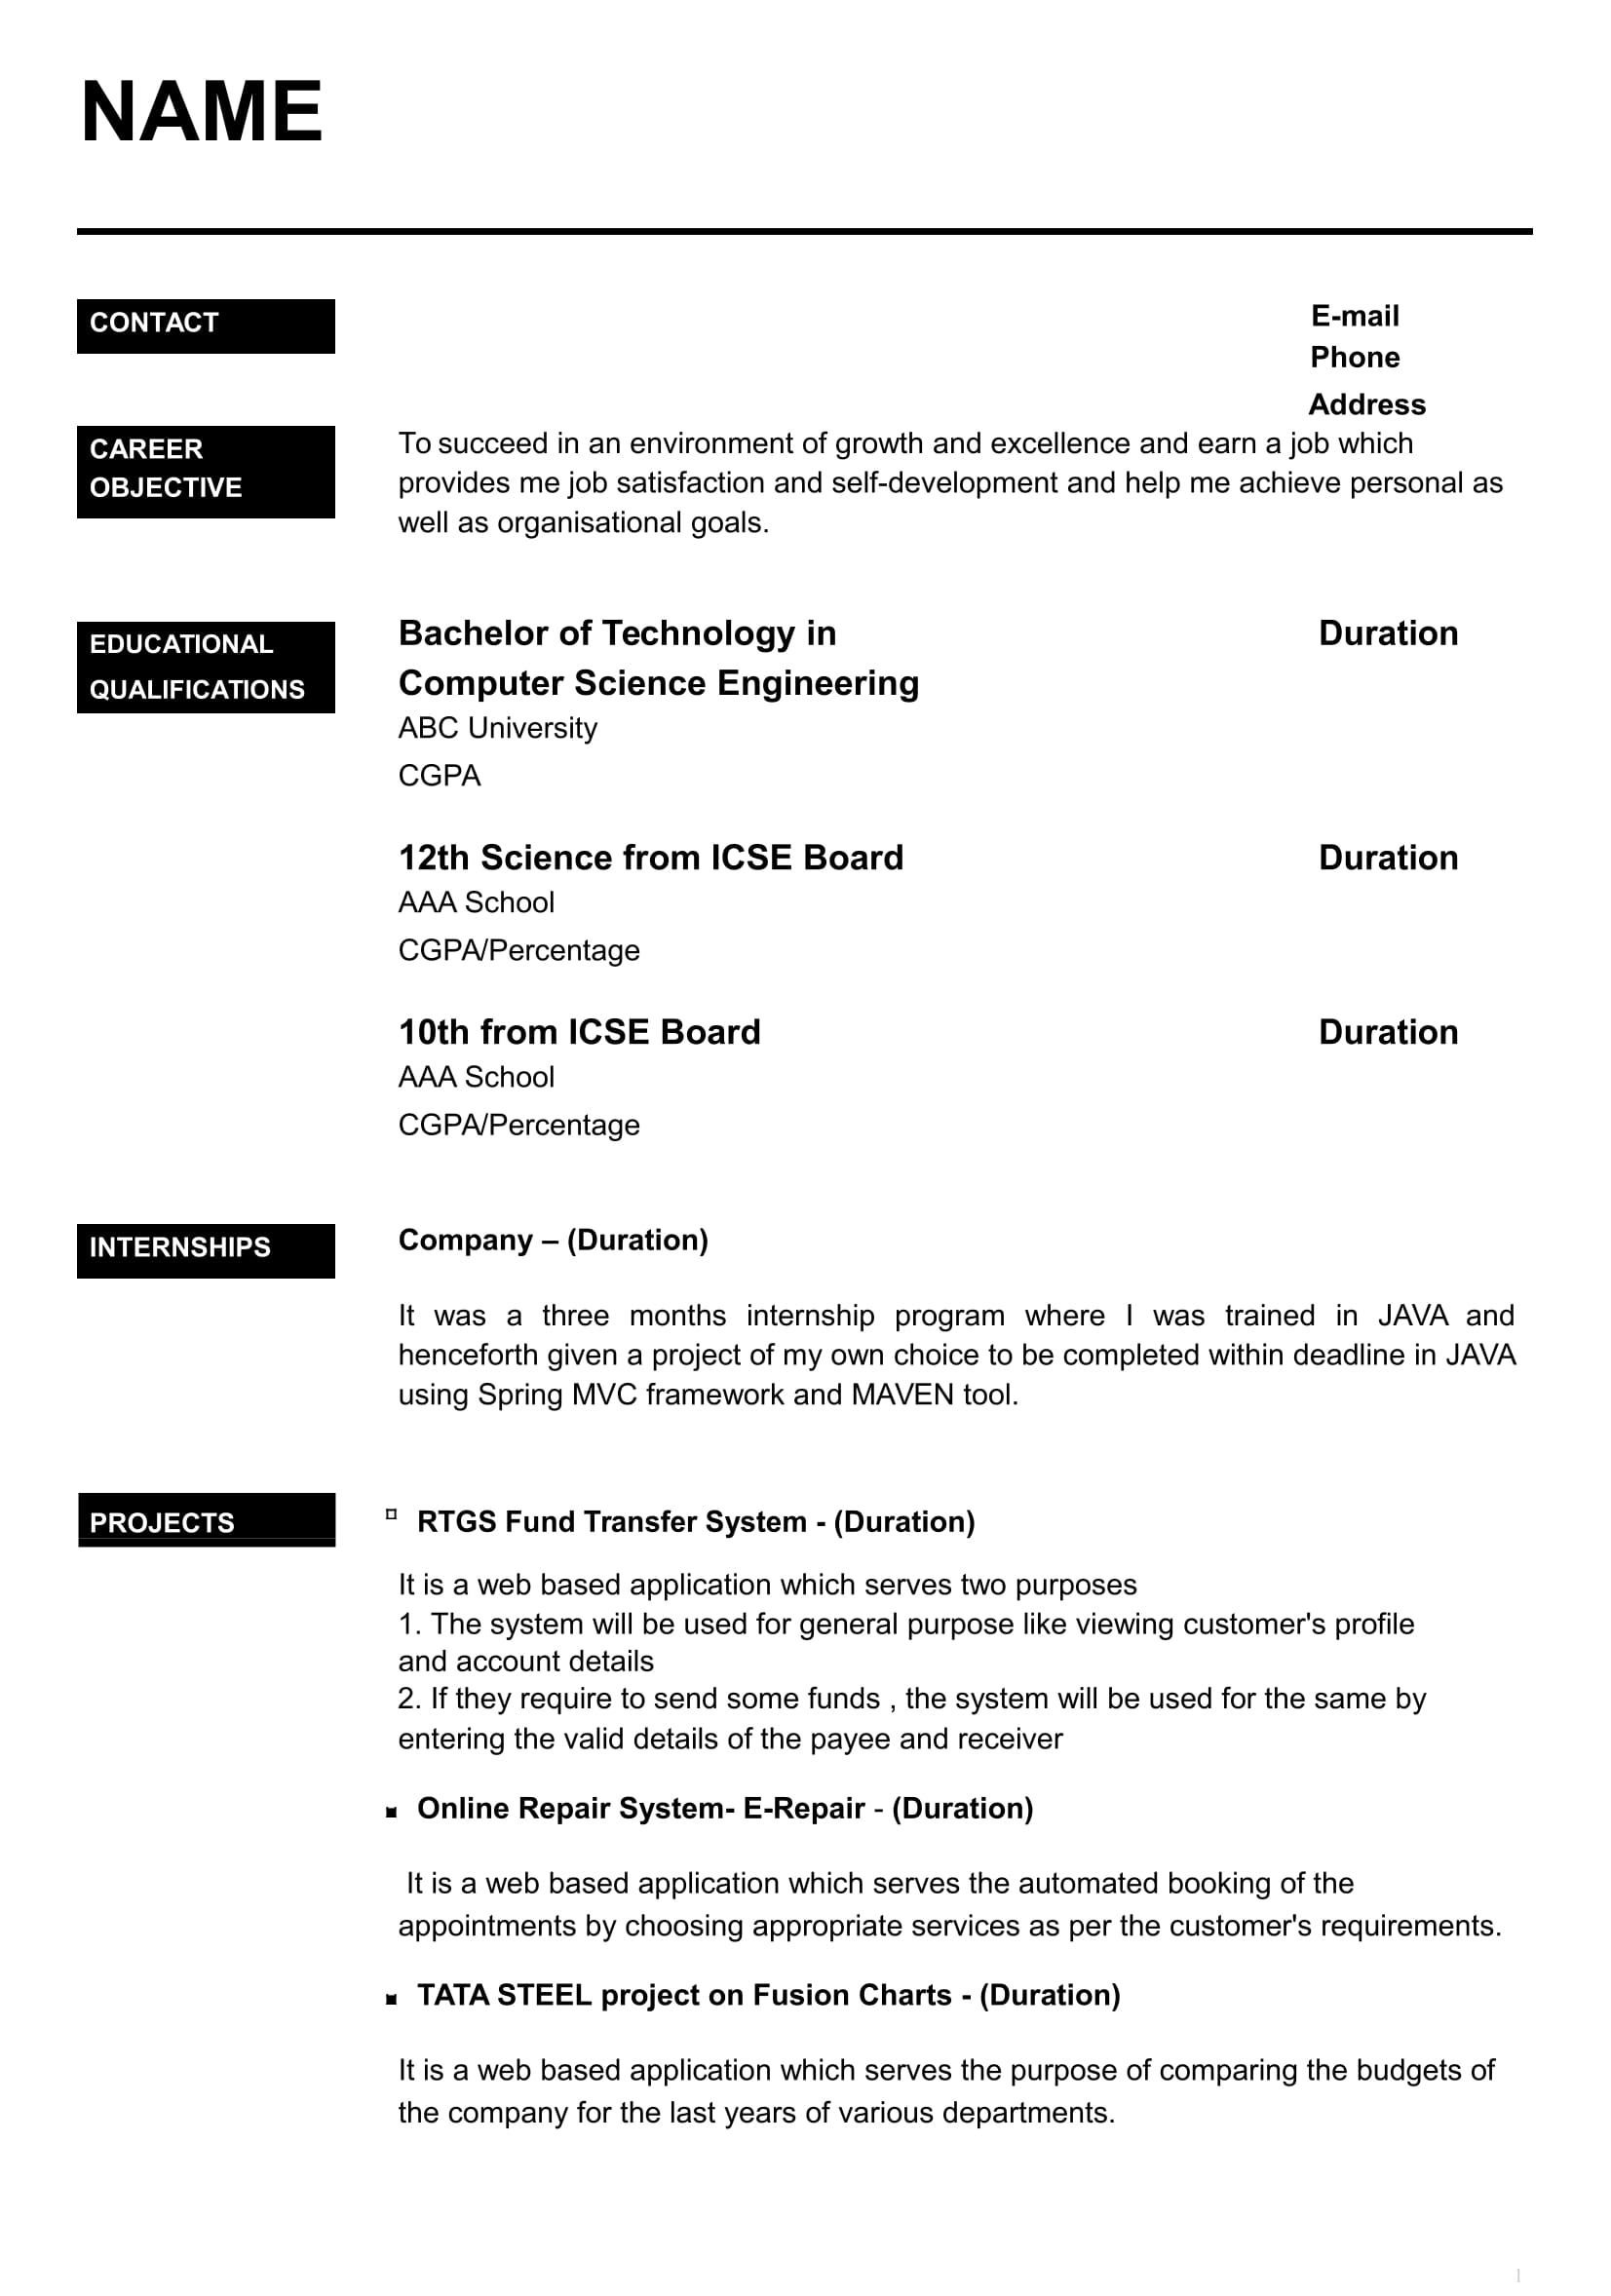 resume templates for freshers free word format awesome best job template samples examples Resume Resume Samples For Freshers